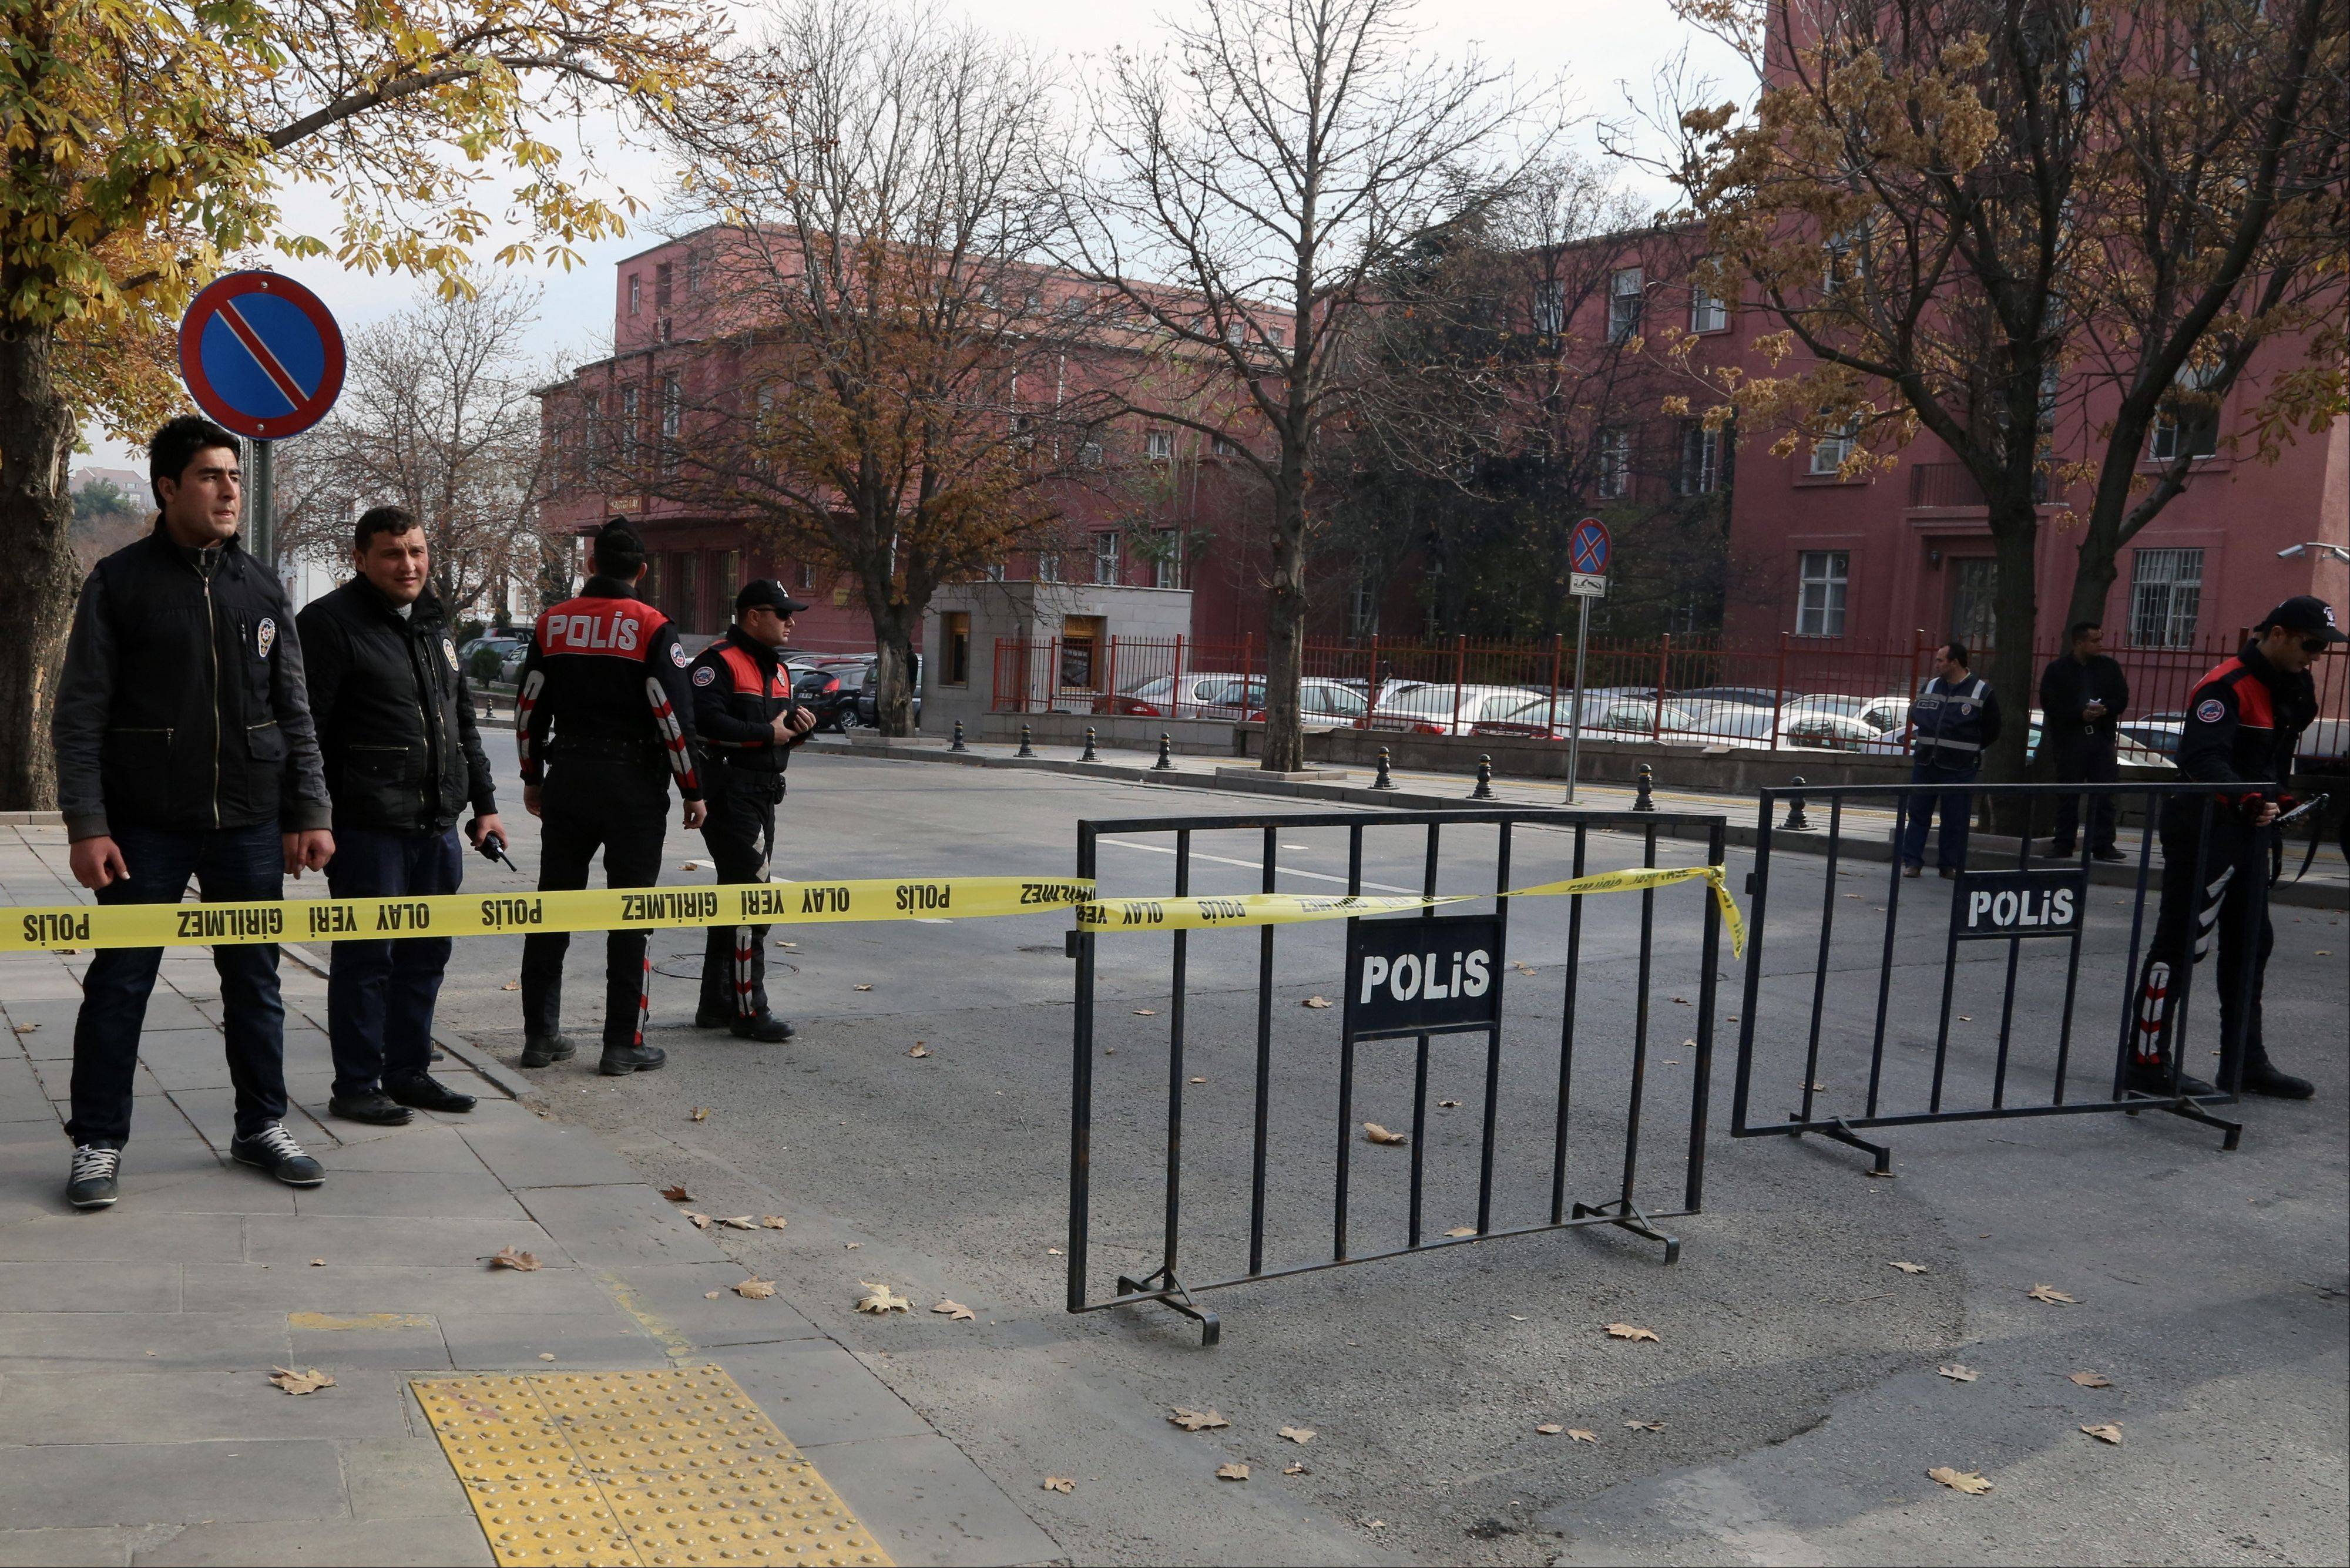 Security officials close a road leading to Turkish Prime Minister Recep Tayyip Erdogan's office Thursday shortly after police subdued a man who was carrying a fake bomb in Ankara, Turkey. Police fired two warning shots in the air before overpowering and arresting him, said an aide to the prime minister. The 53-year-old man, identified as Tugrul B., was carrying a device made to look like a bomb, the official said. He was being questioned and the motive for his action was not immediately known.